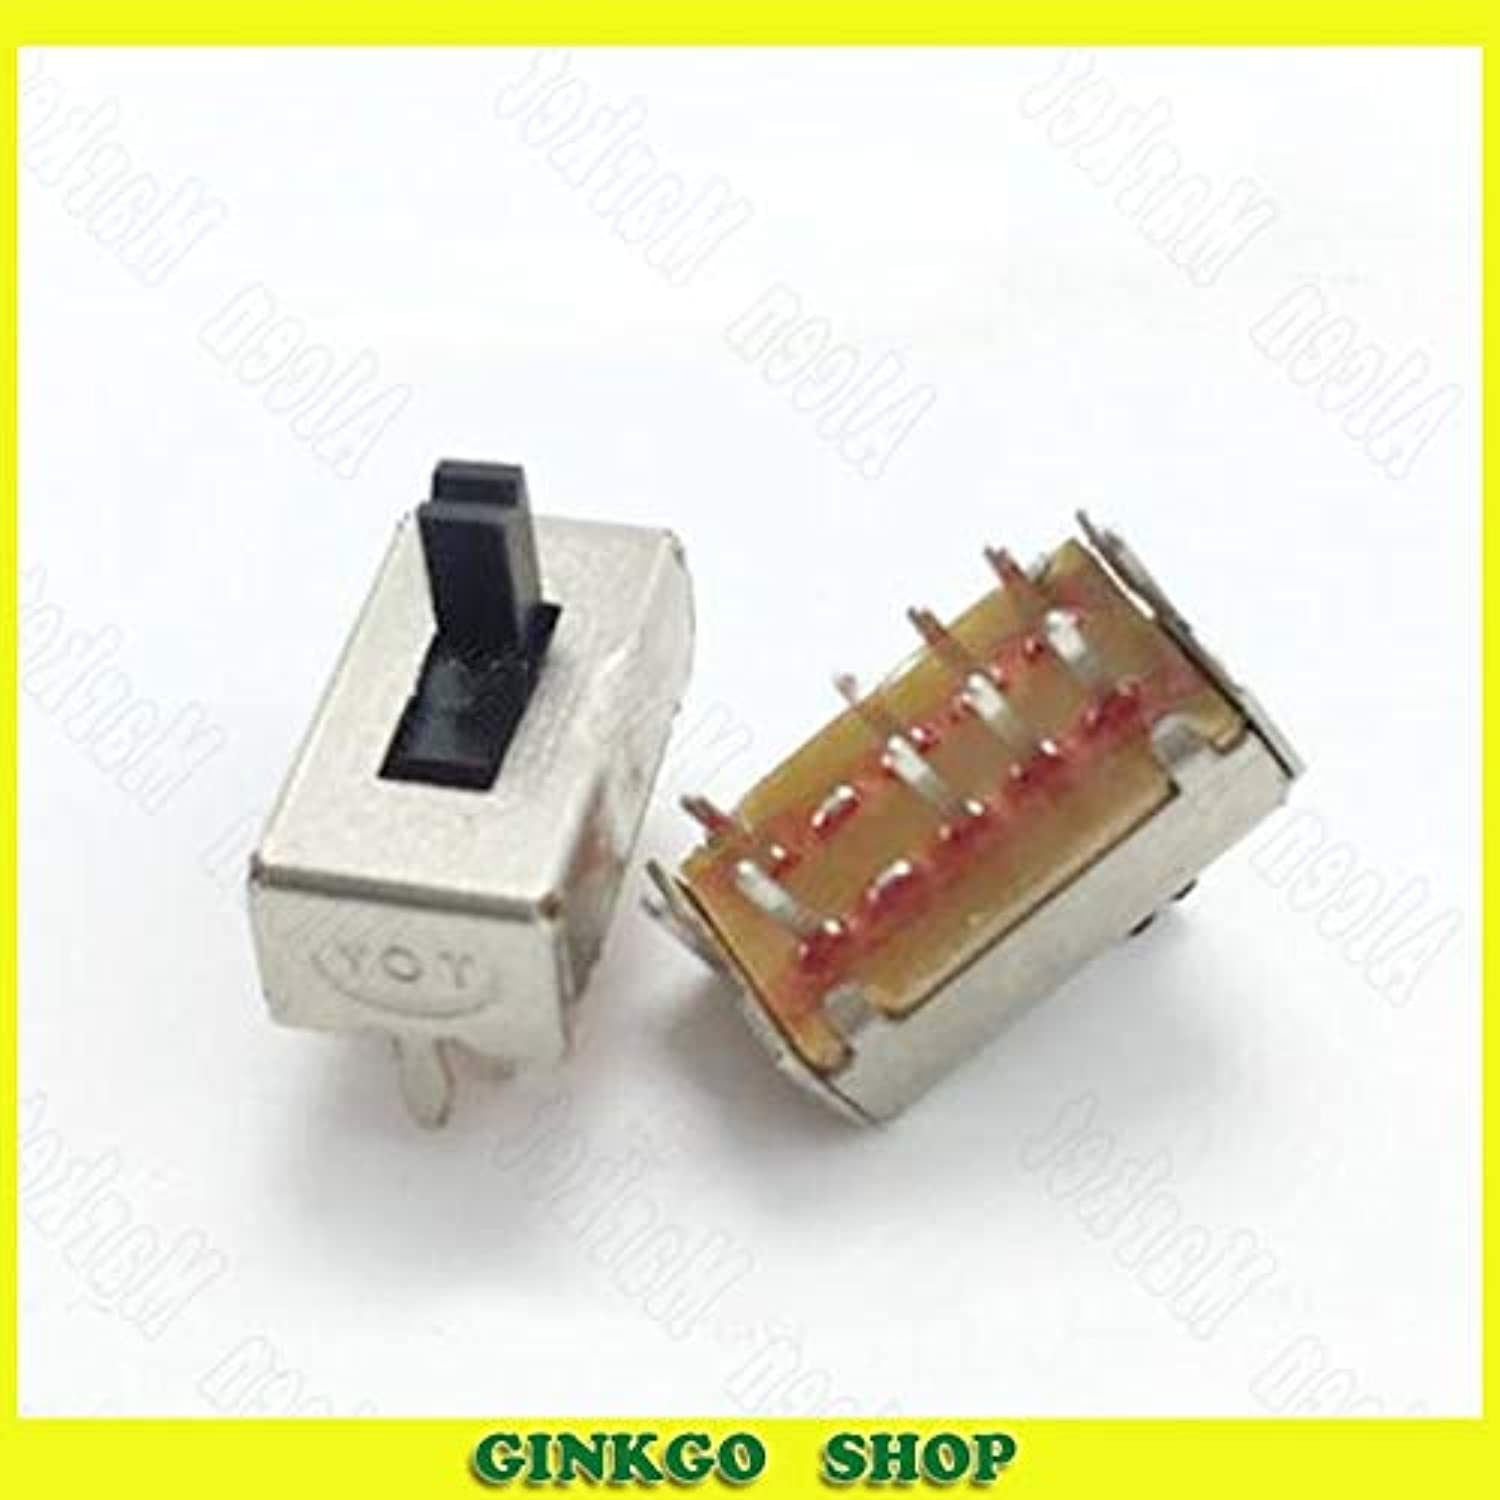 200pcs lot SS23D07 2P3T Double Row Straight Pin Toggle Slide Switch with Stand 8 Pin greenical Type